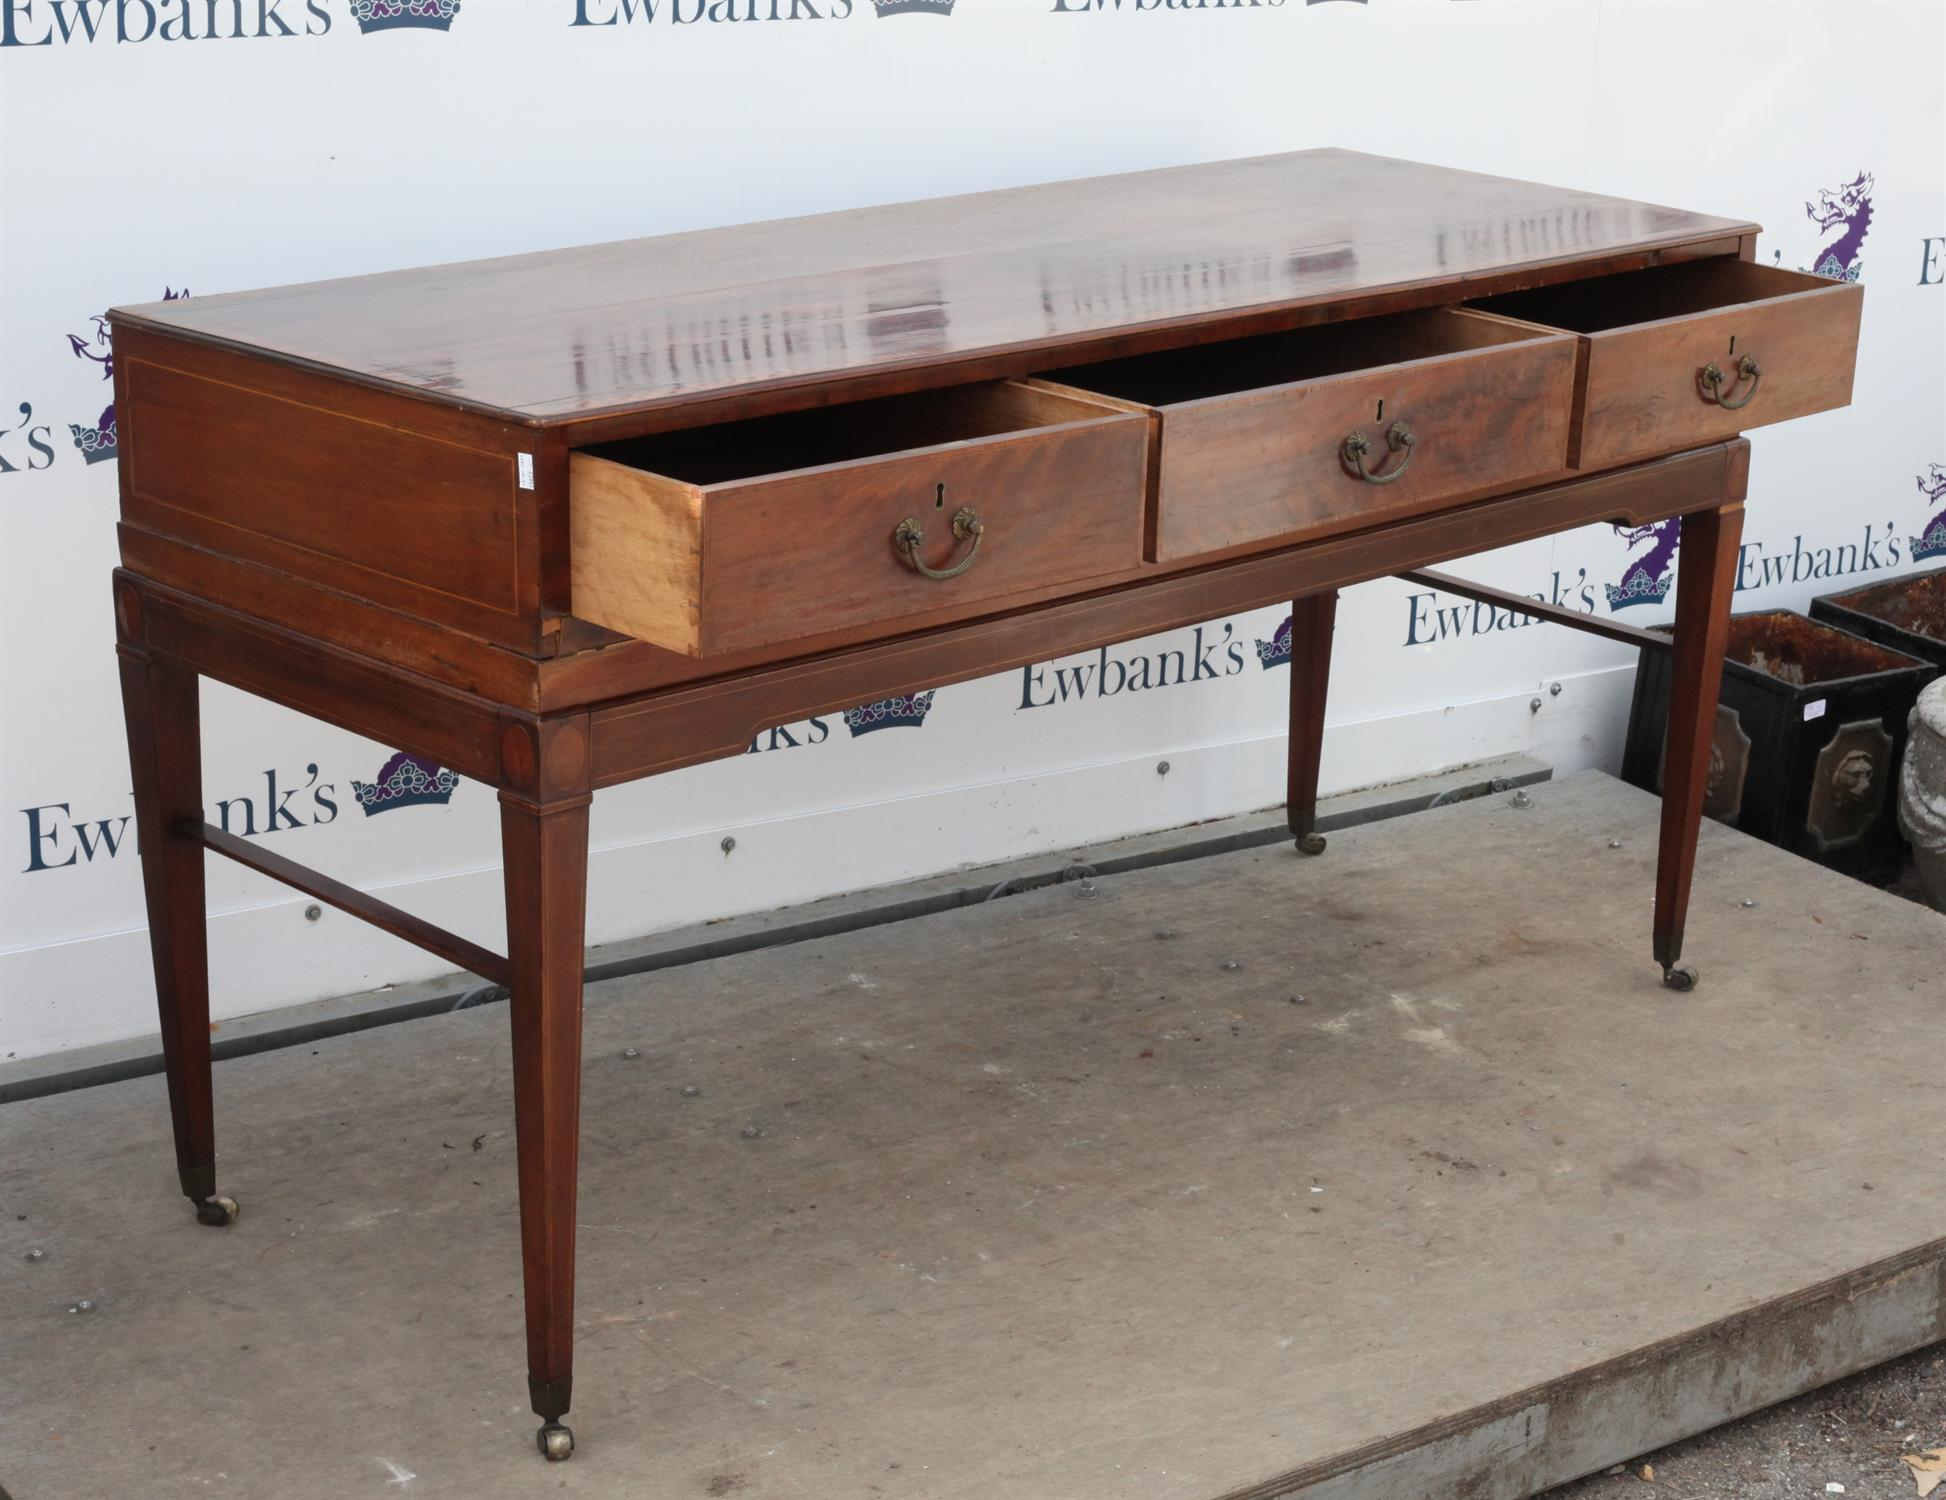 19th century mahogany and satinwood crossbanded side table, with three drawers on square tapered - Image 2 of 2